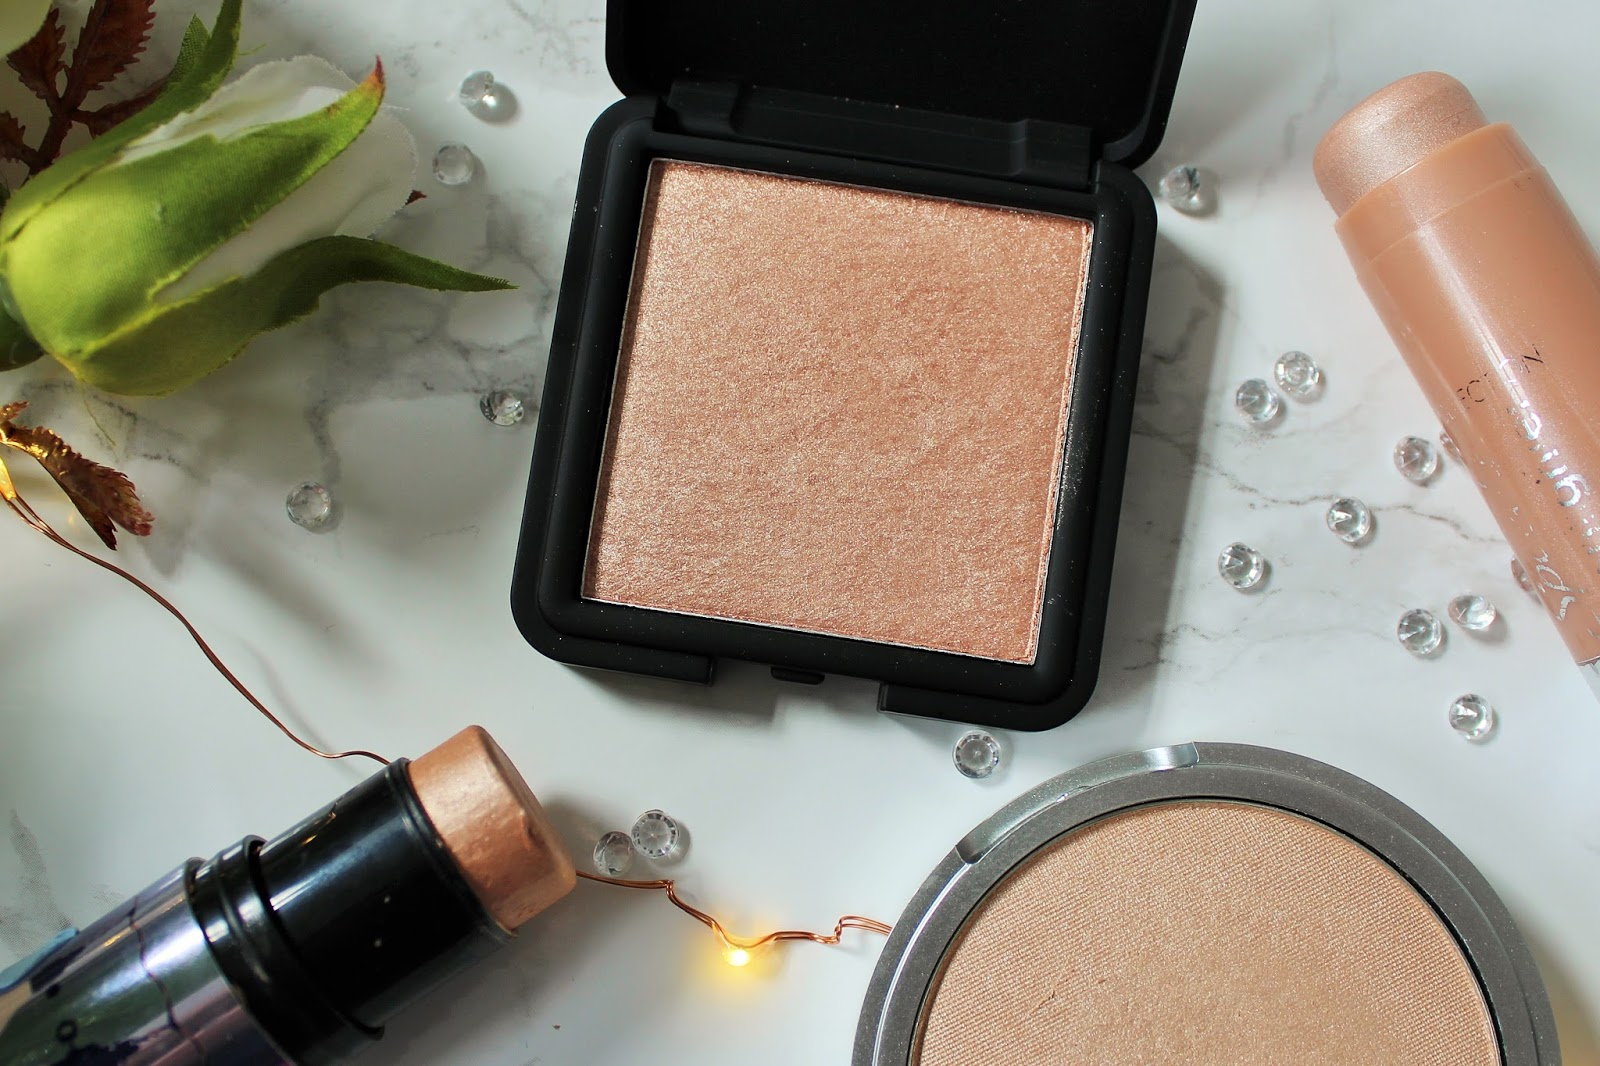 My Highlighter Collection - 4